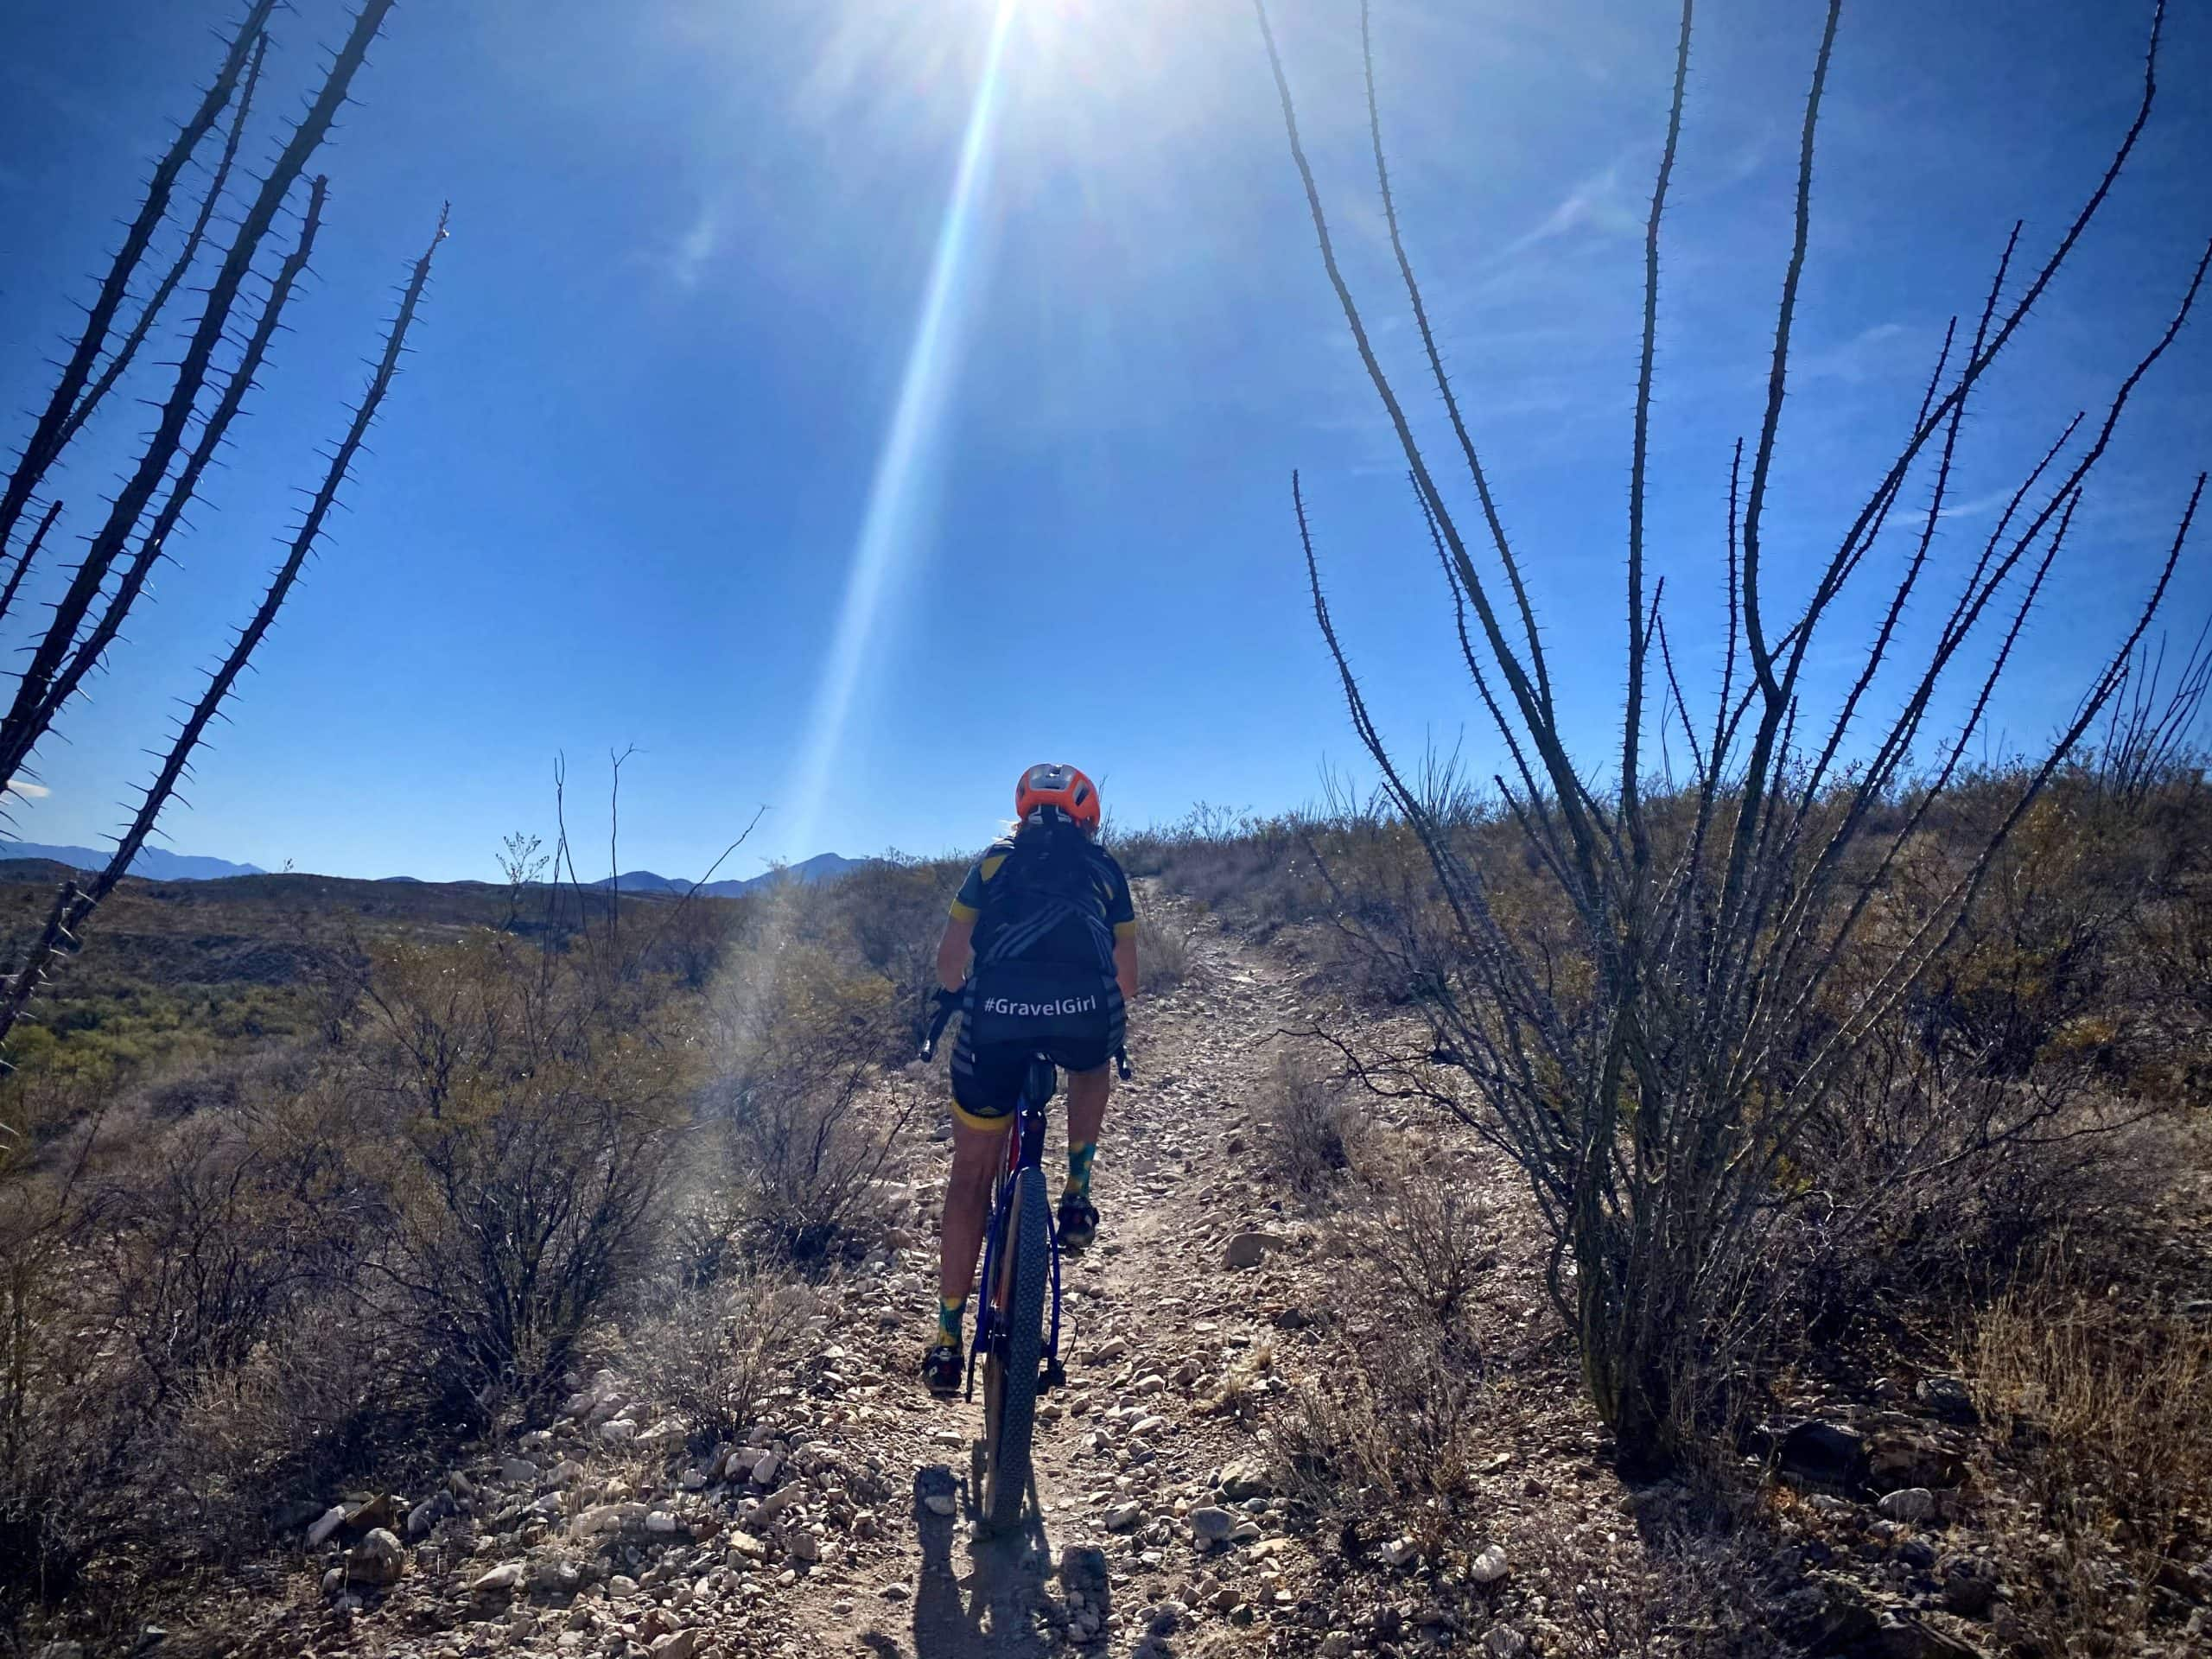 Gravel Girl leading out on the Arizona Trail from the Gabe Zimmerman trailhead.